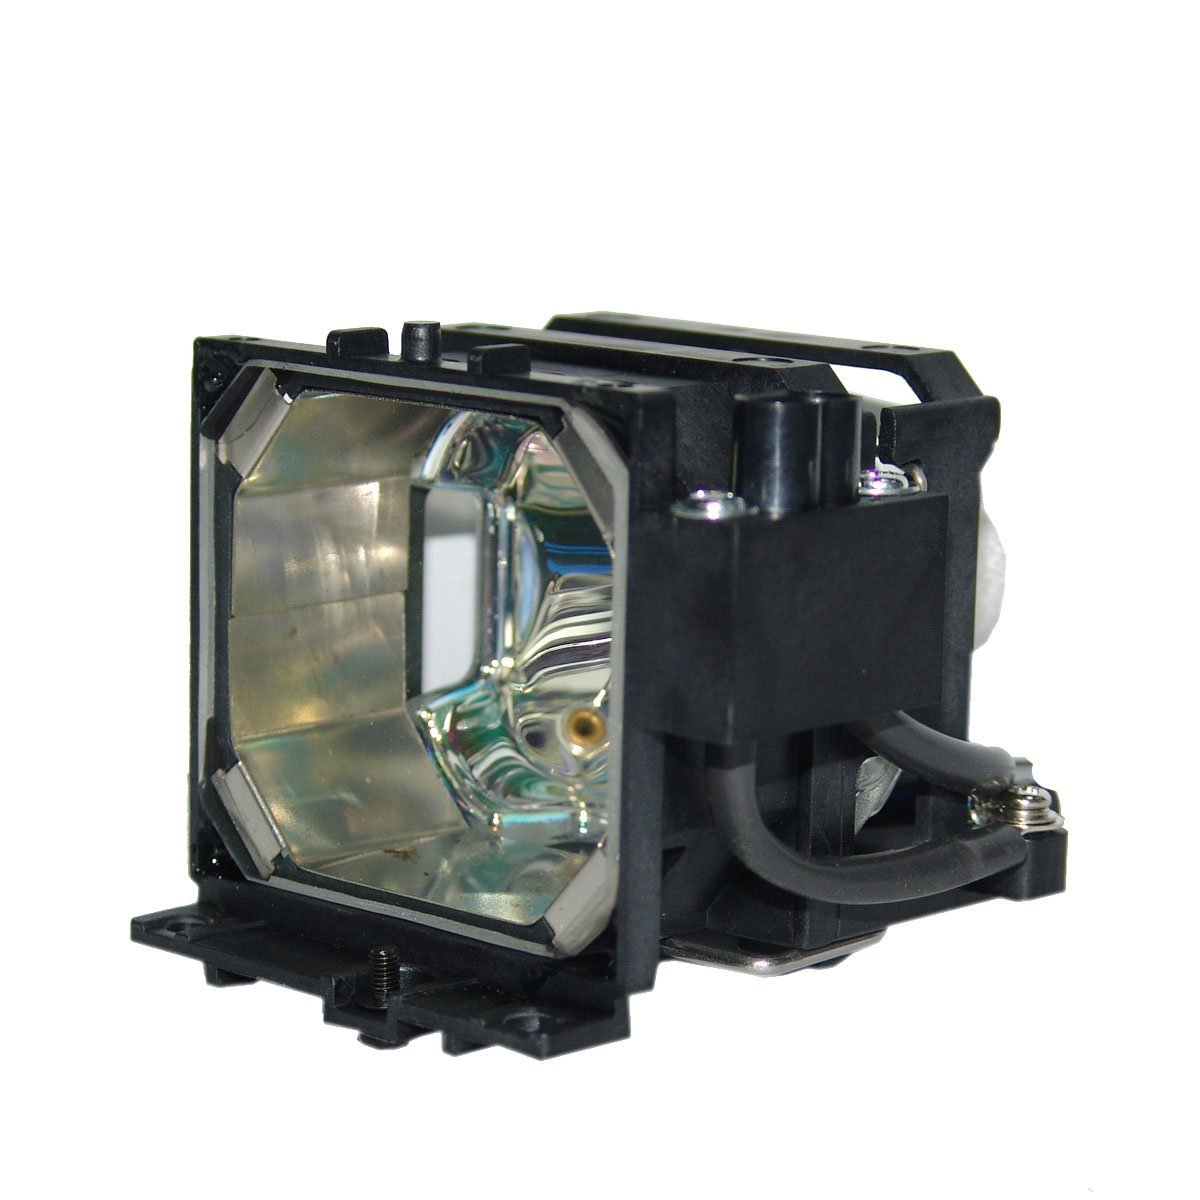 Projector Lamp Bulb LMP-H150 LMPH150 for SONY VPL-HS2 VPL-HS3 with housing original replacement projector lamp bulb lmp f272 for sony vpl fx35 vpl fh30 vpl fh35 vpl fh31 projector nsha275w